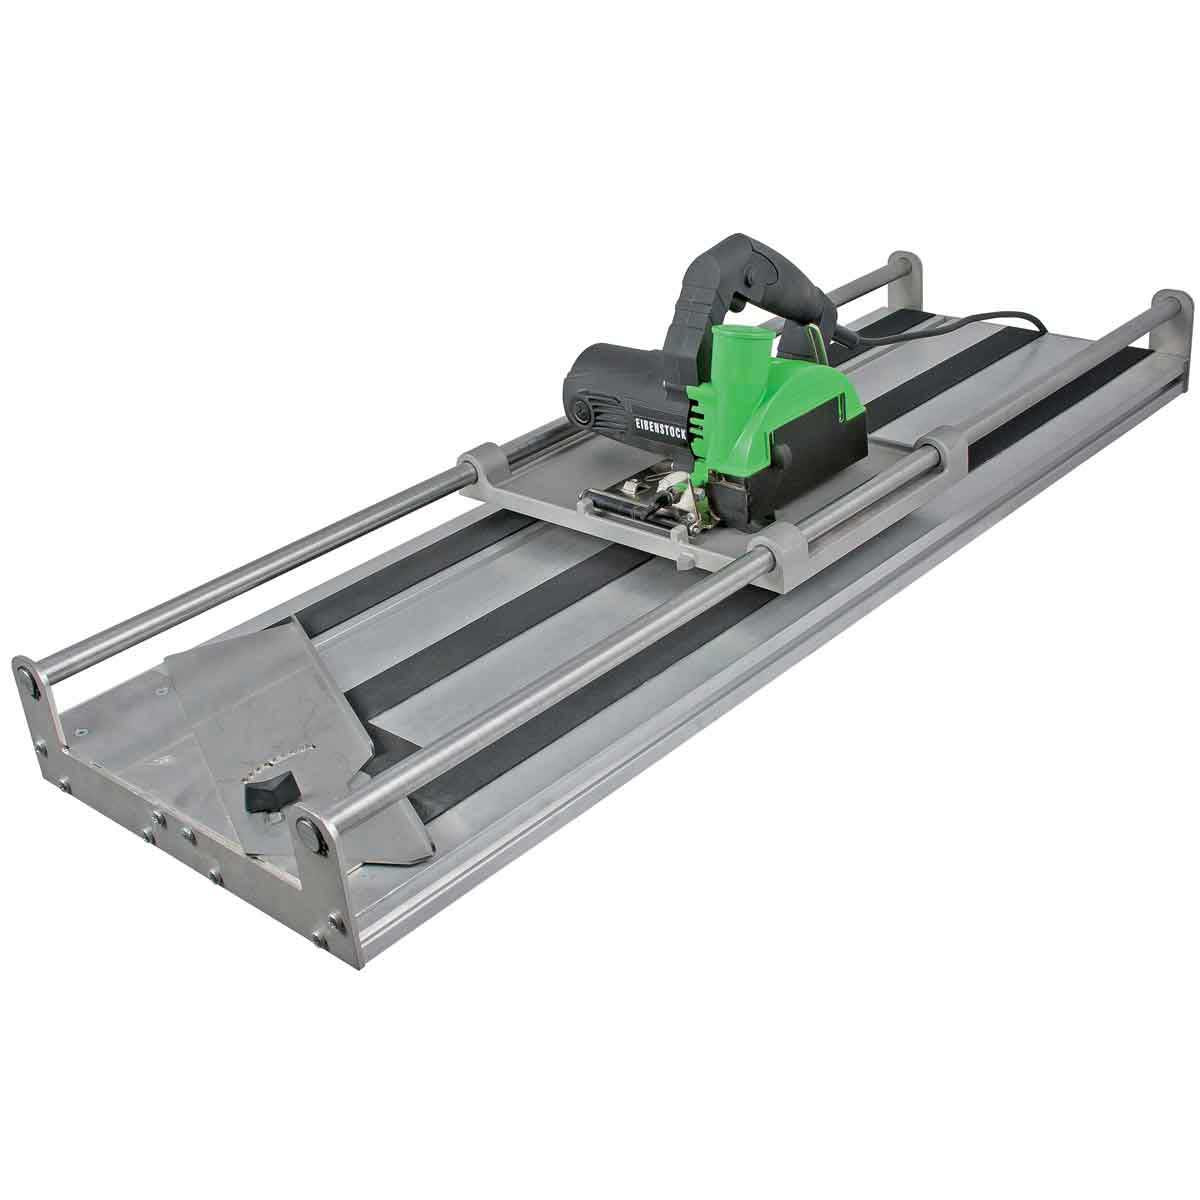 Eibenstock Cutting Tables with EDS 125 hand-held saw